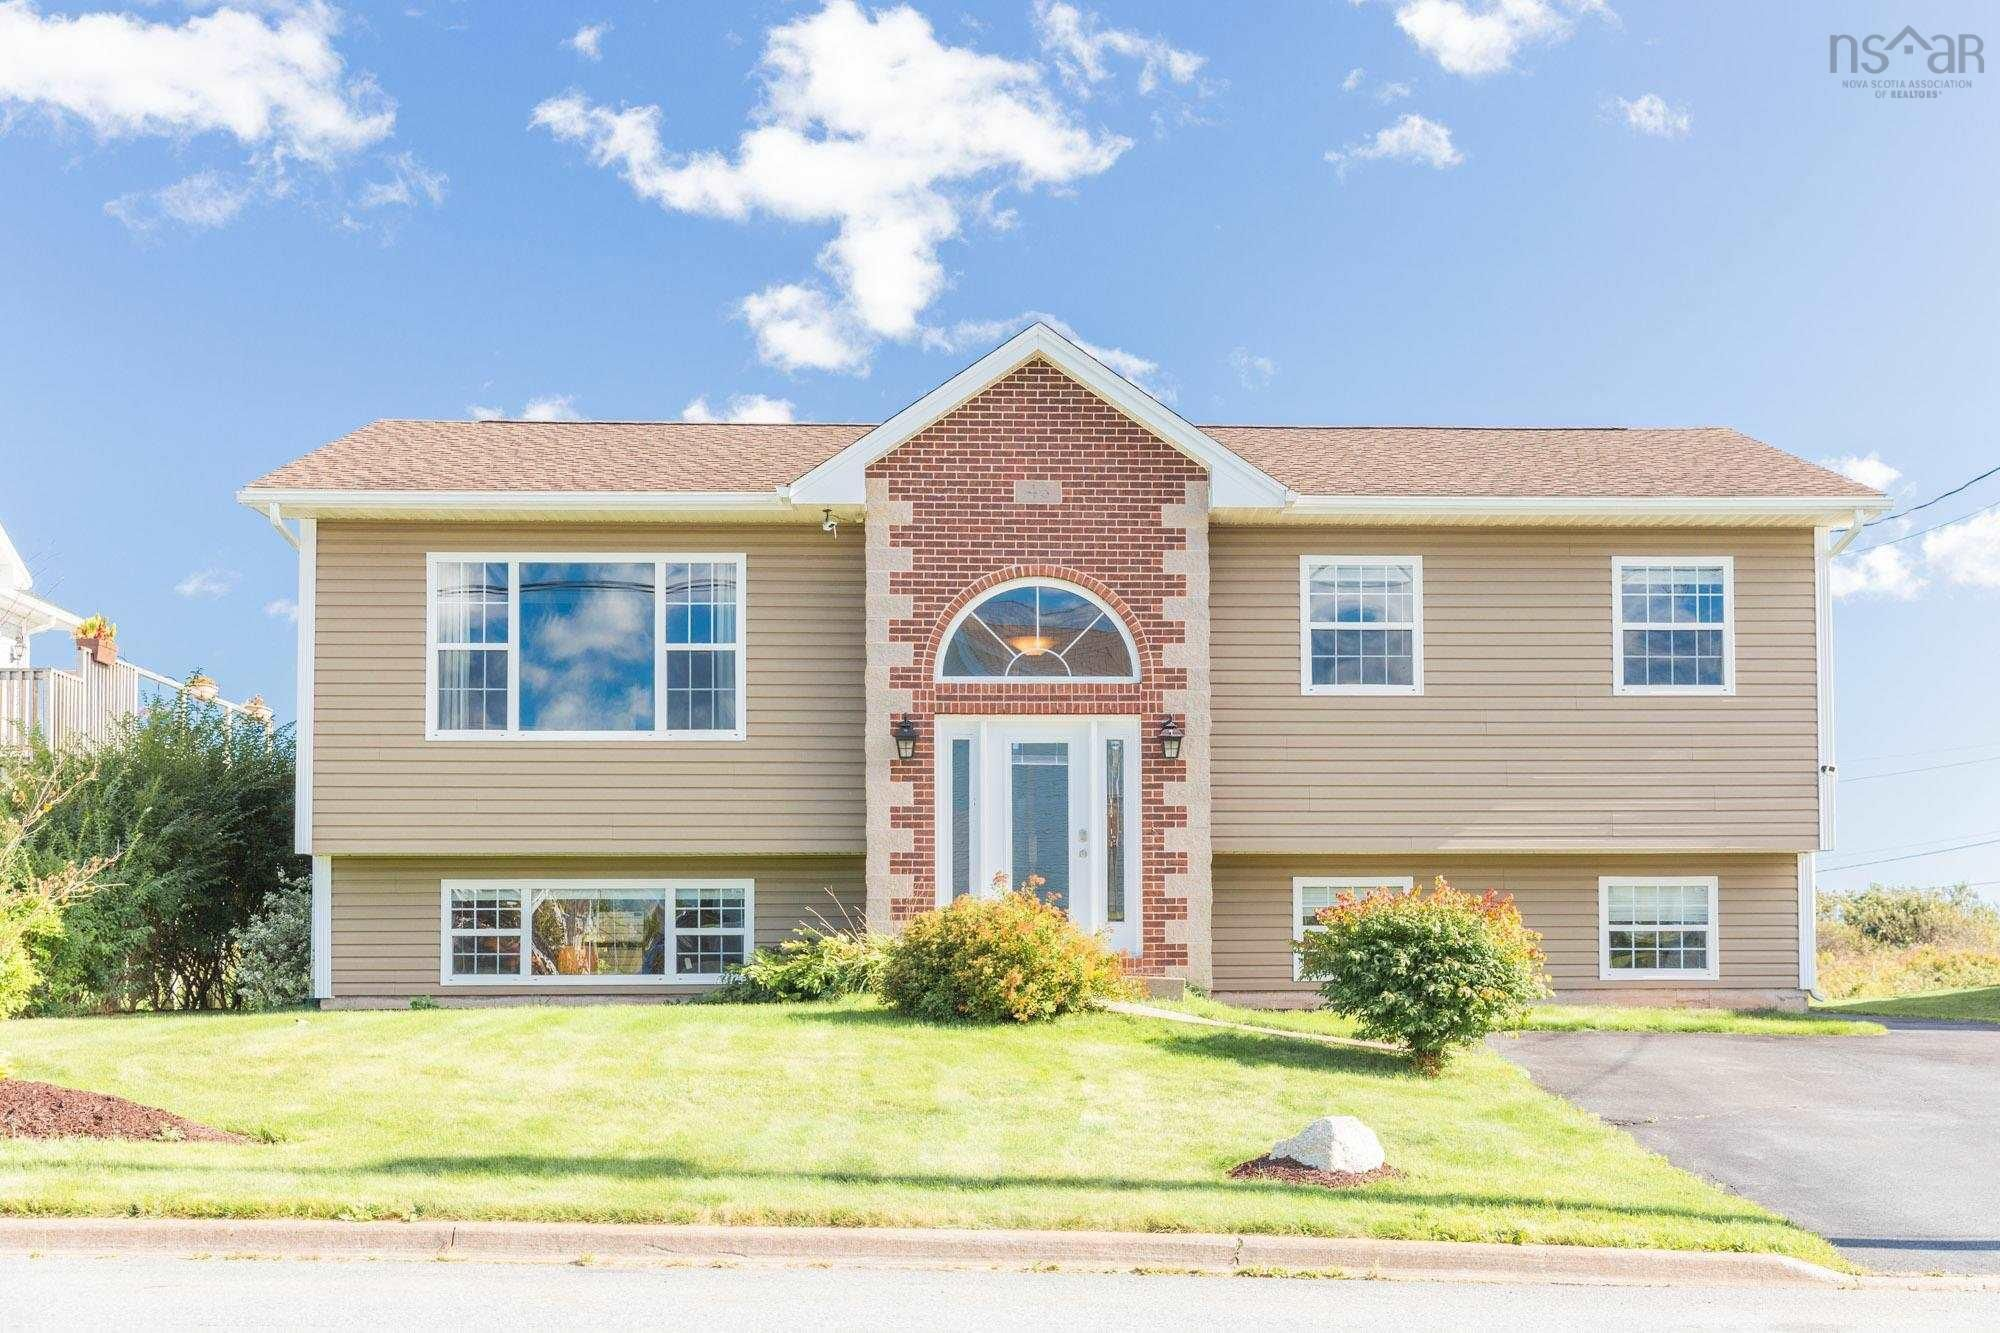 Main Photo: 43 Sandpiper Drive in Eastern Passage: 11-Dartmouth Woodside, Eastern Passage, Cow Bay Residential for sale (Halifax-Dartmouth)  : MLS®# 202125269